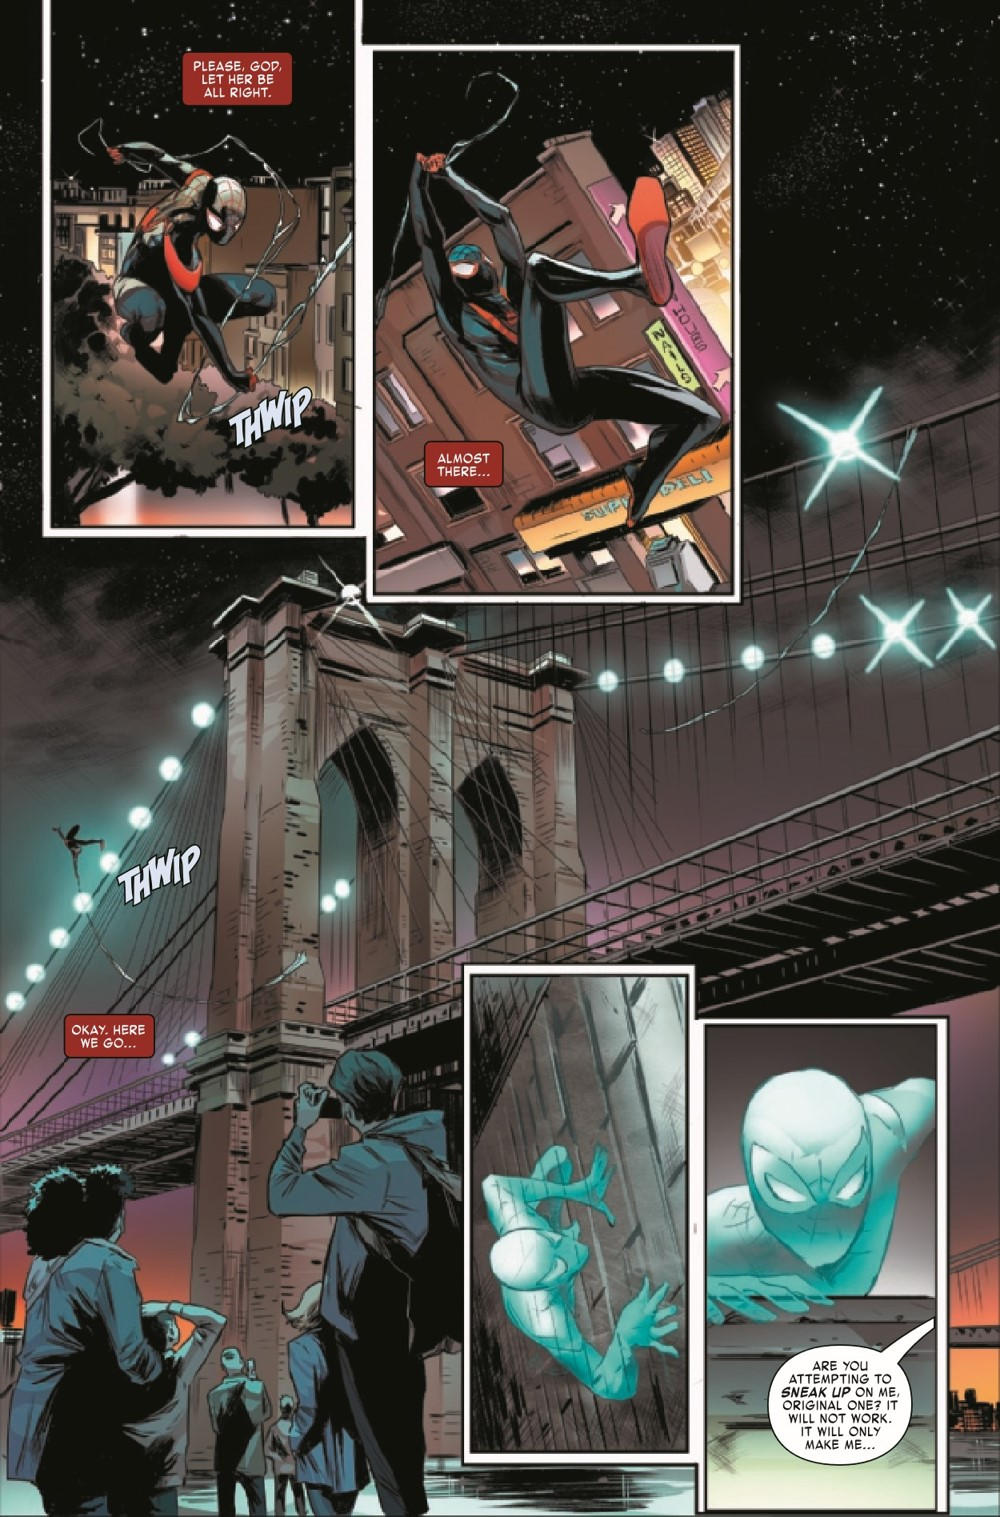 MMSM2018028_Preview-6 ComicList Previews: MILES MORALES SPIDER-MAN #28